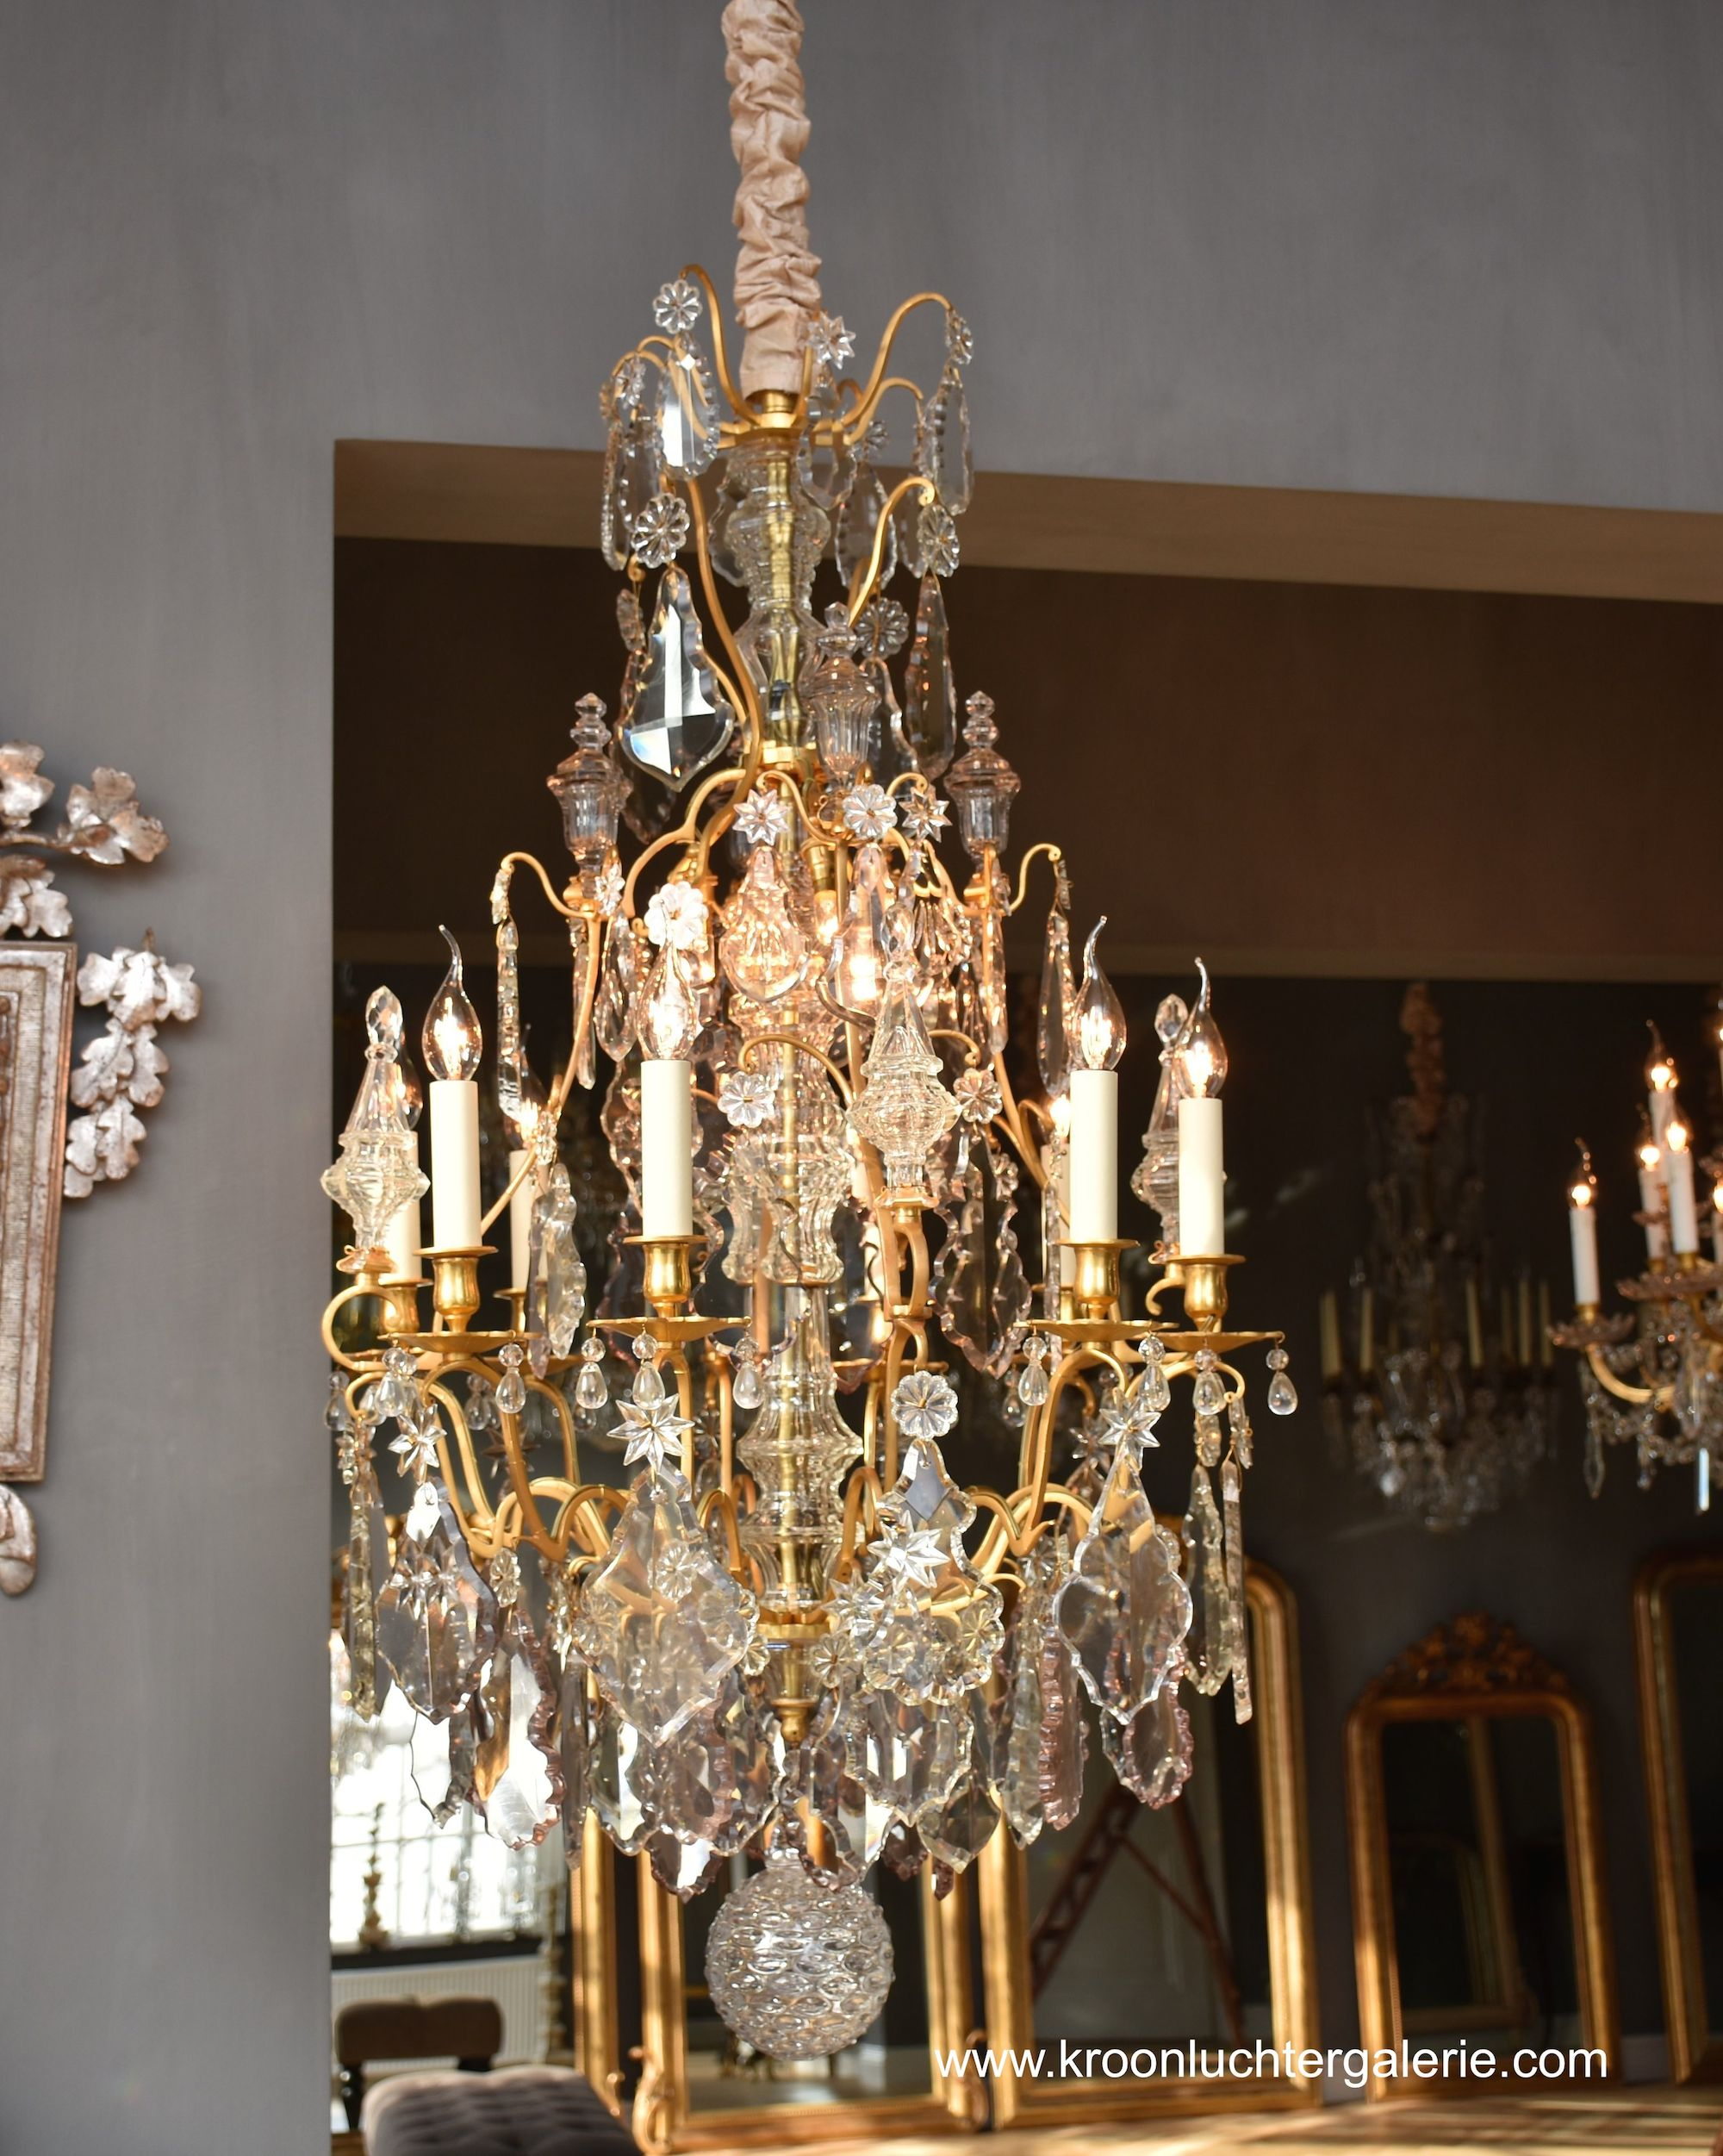 French chandelier with 12 light in the style of Louis XV